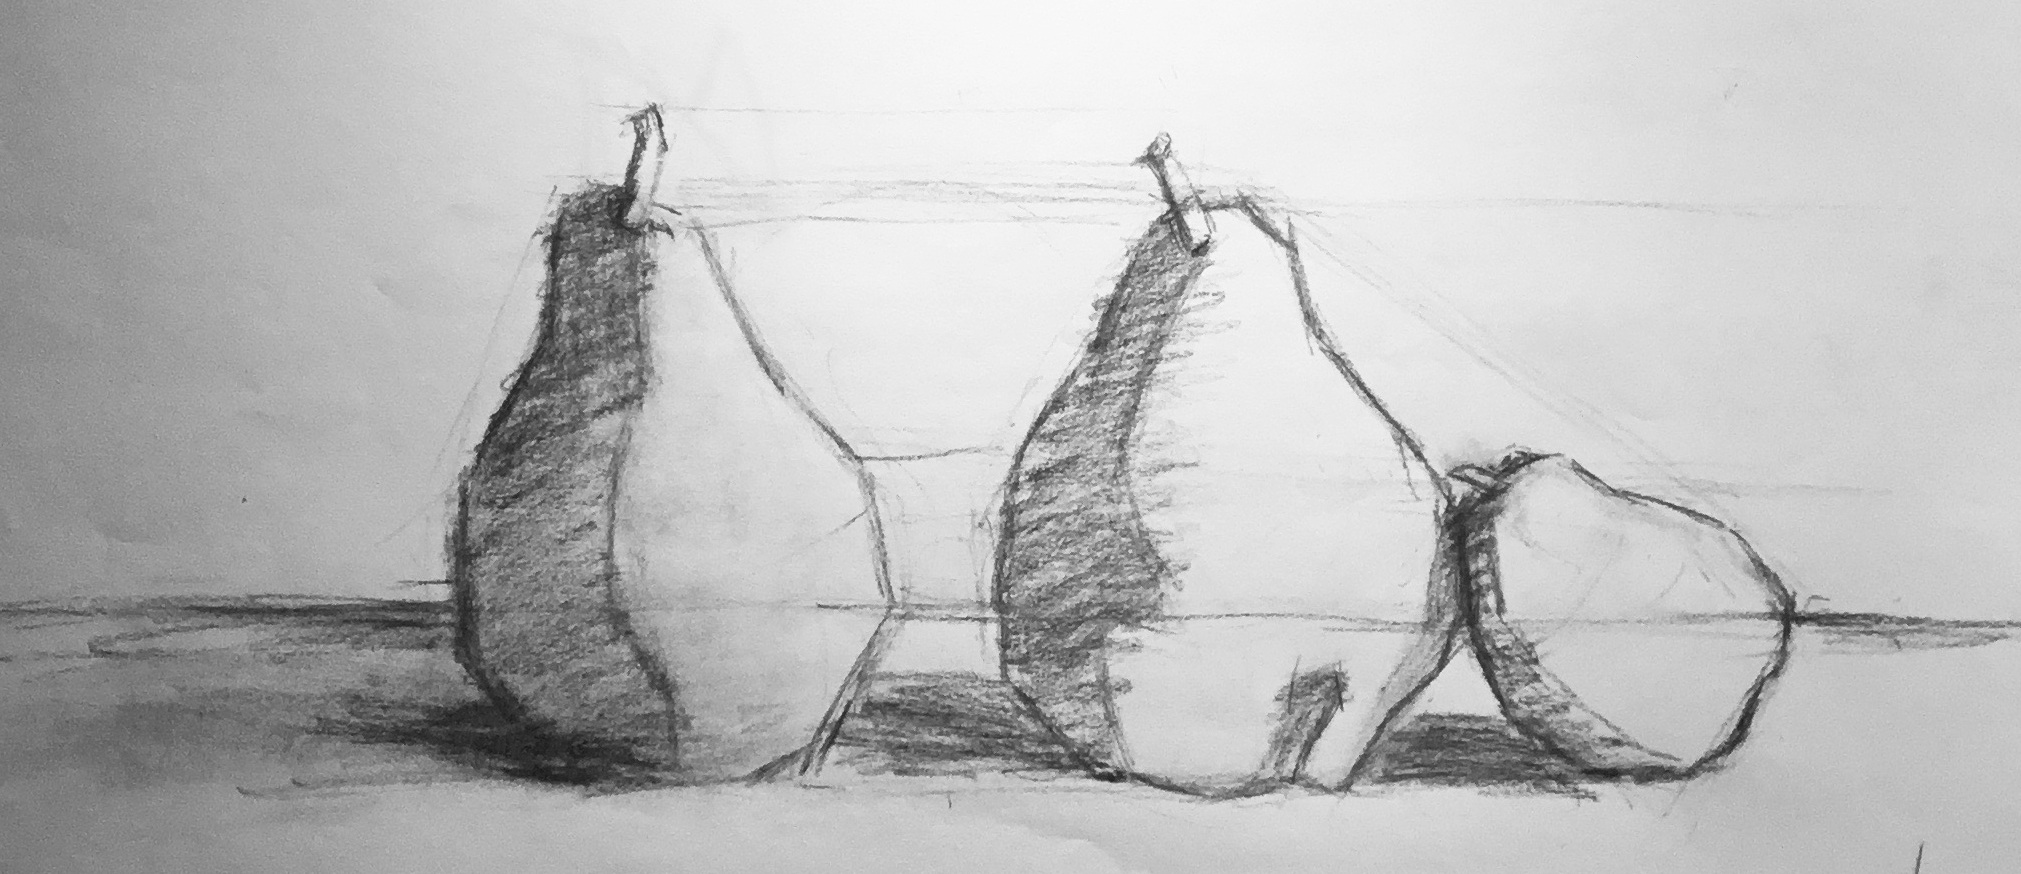 I teach private, classical representational (realist) drawing, starting with a block-in, using charcoal on paper. I have also produced On-Demand video lessons which allow you to learn at your convenience.  Image above is one of my demonstration drawings from my Introduction to Drawing class, Lesson One: Envelope and Block-in, which focuses on drawing the outside edges of a simple still life and then finding form and cast shadows.